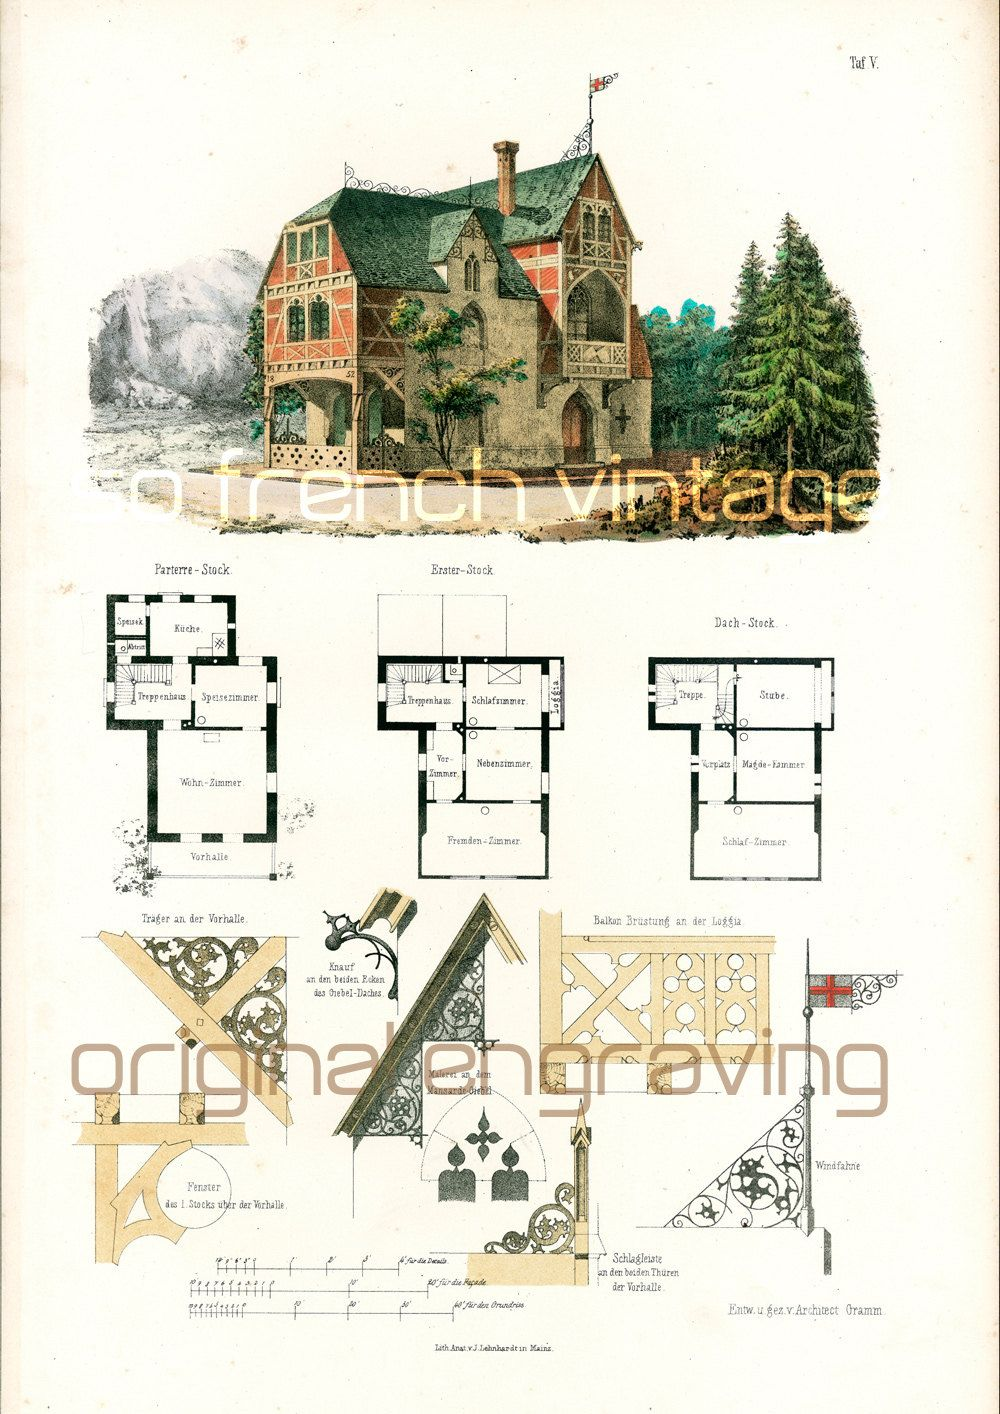 1897 architecture styles large size churches castles for French gothic house plans